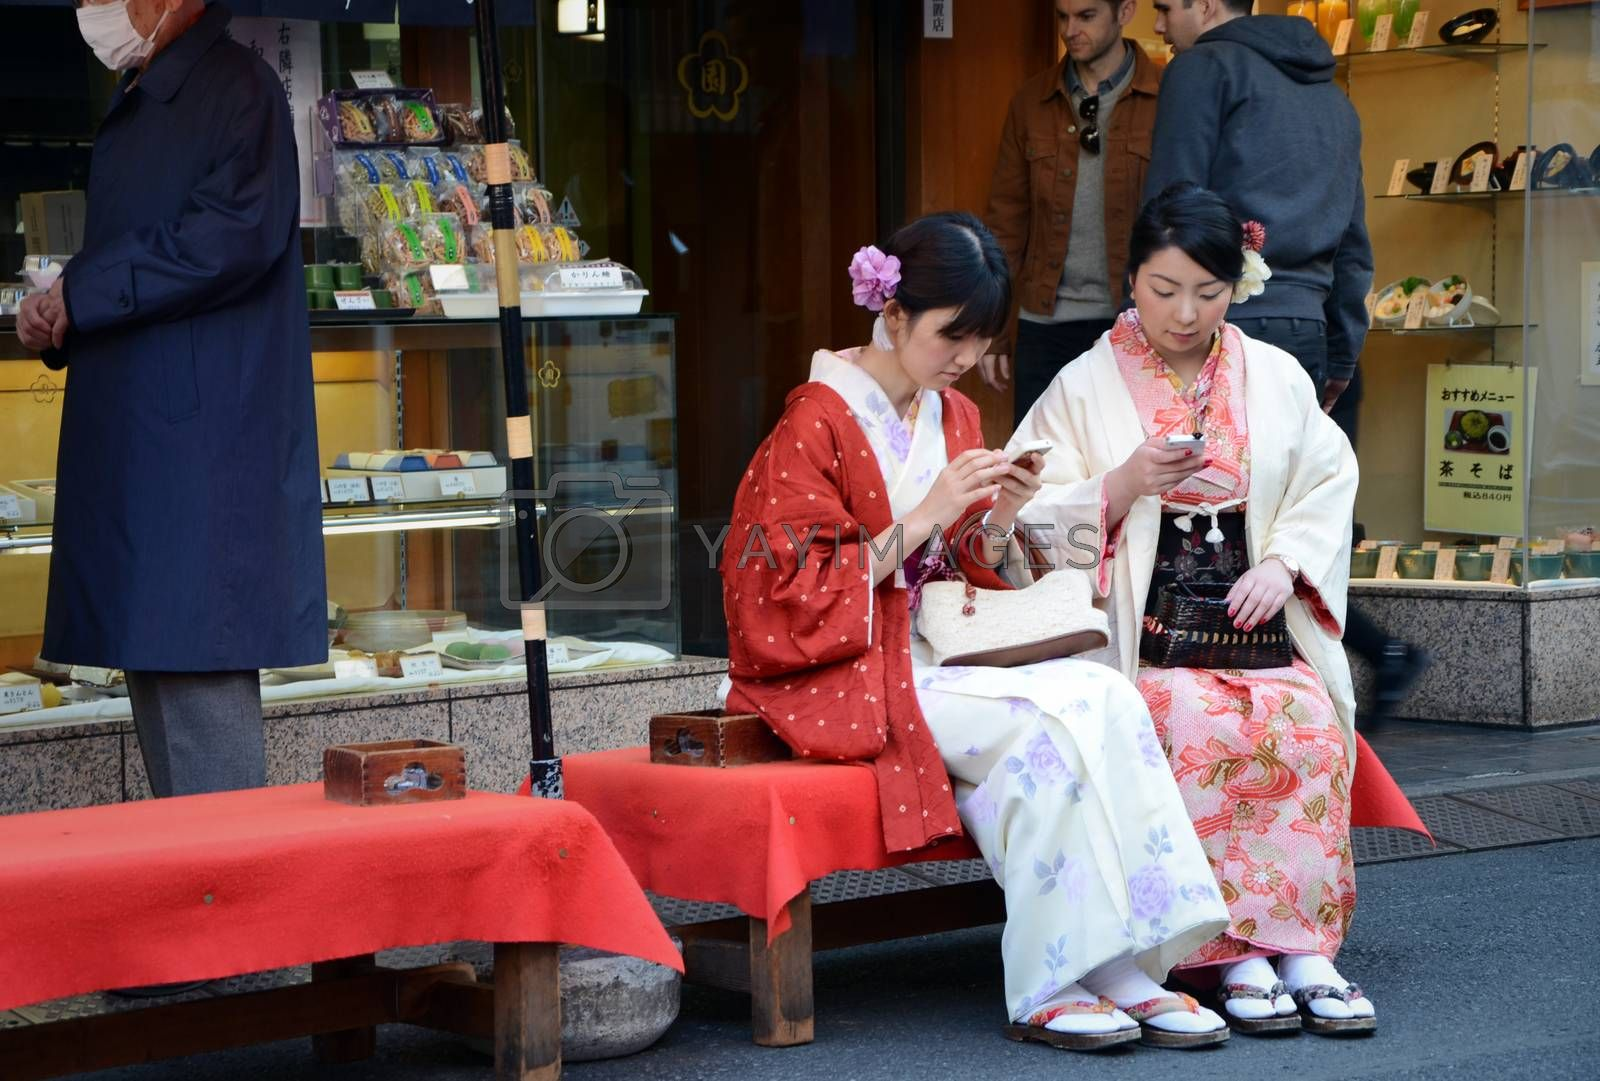 TOKYO, JAPAN - NOVEMBER 21, 2013: Young Japanese women wearing a traditional dress called Kimono for cherry (Sakura) blossom viewing at Asakusa area in Tokyo on November 21, 2013.